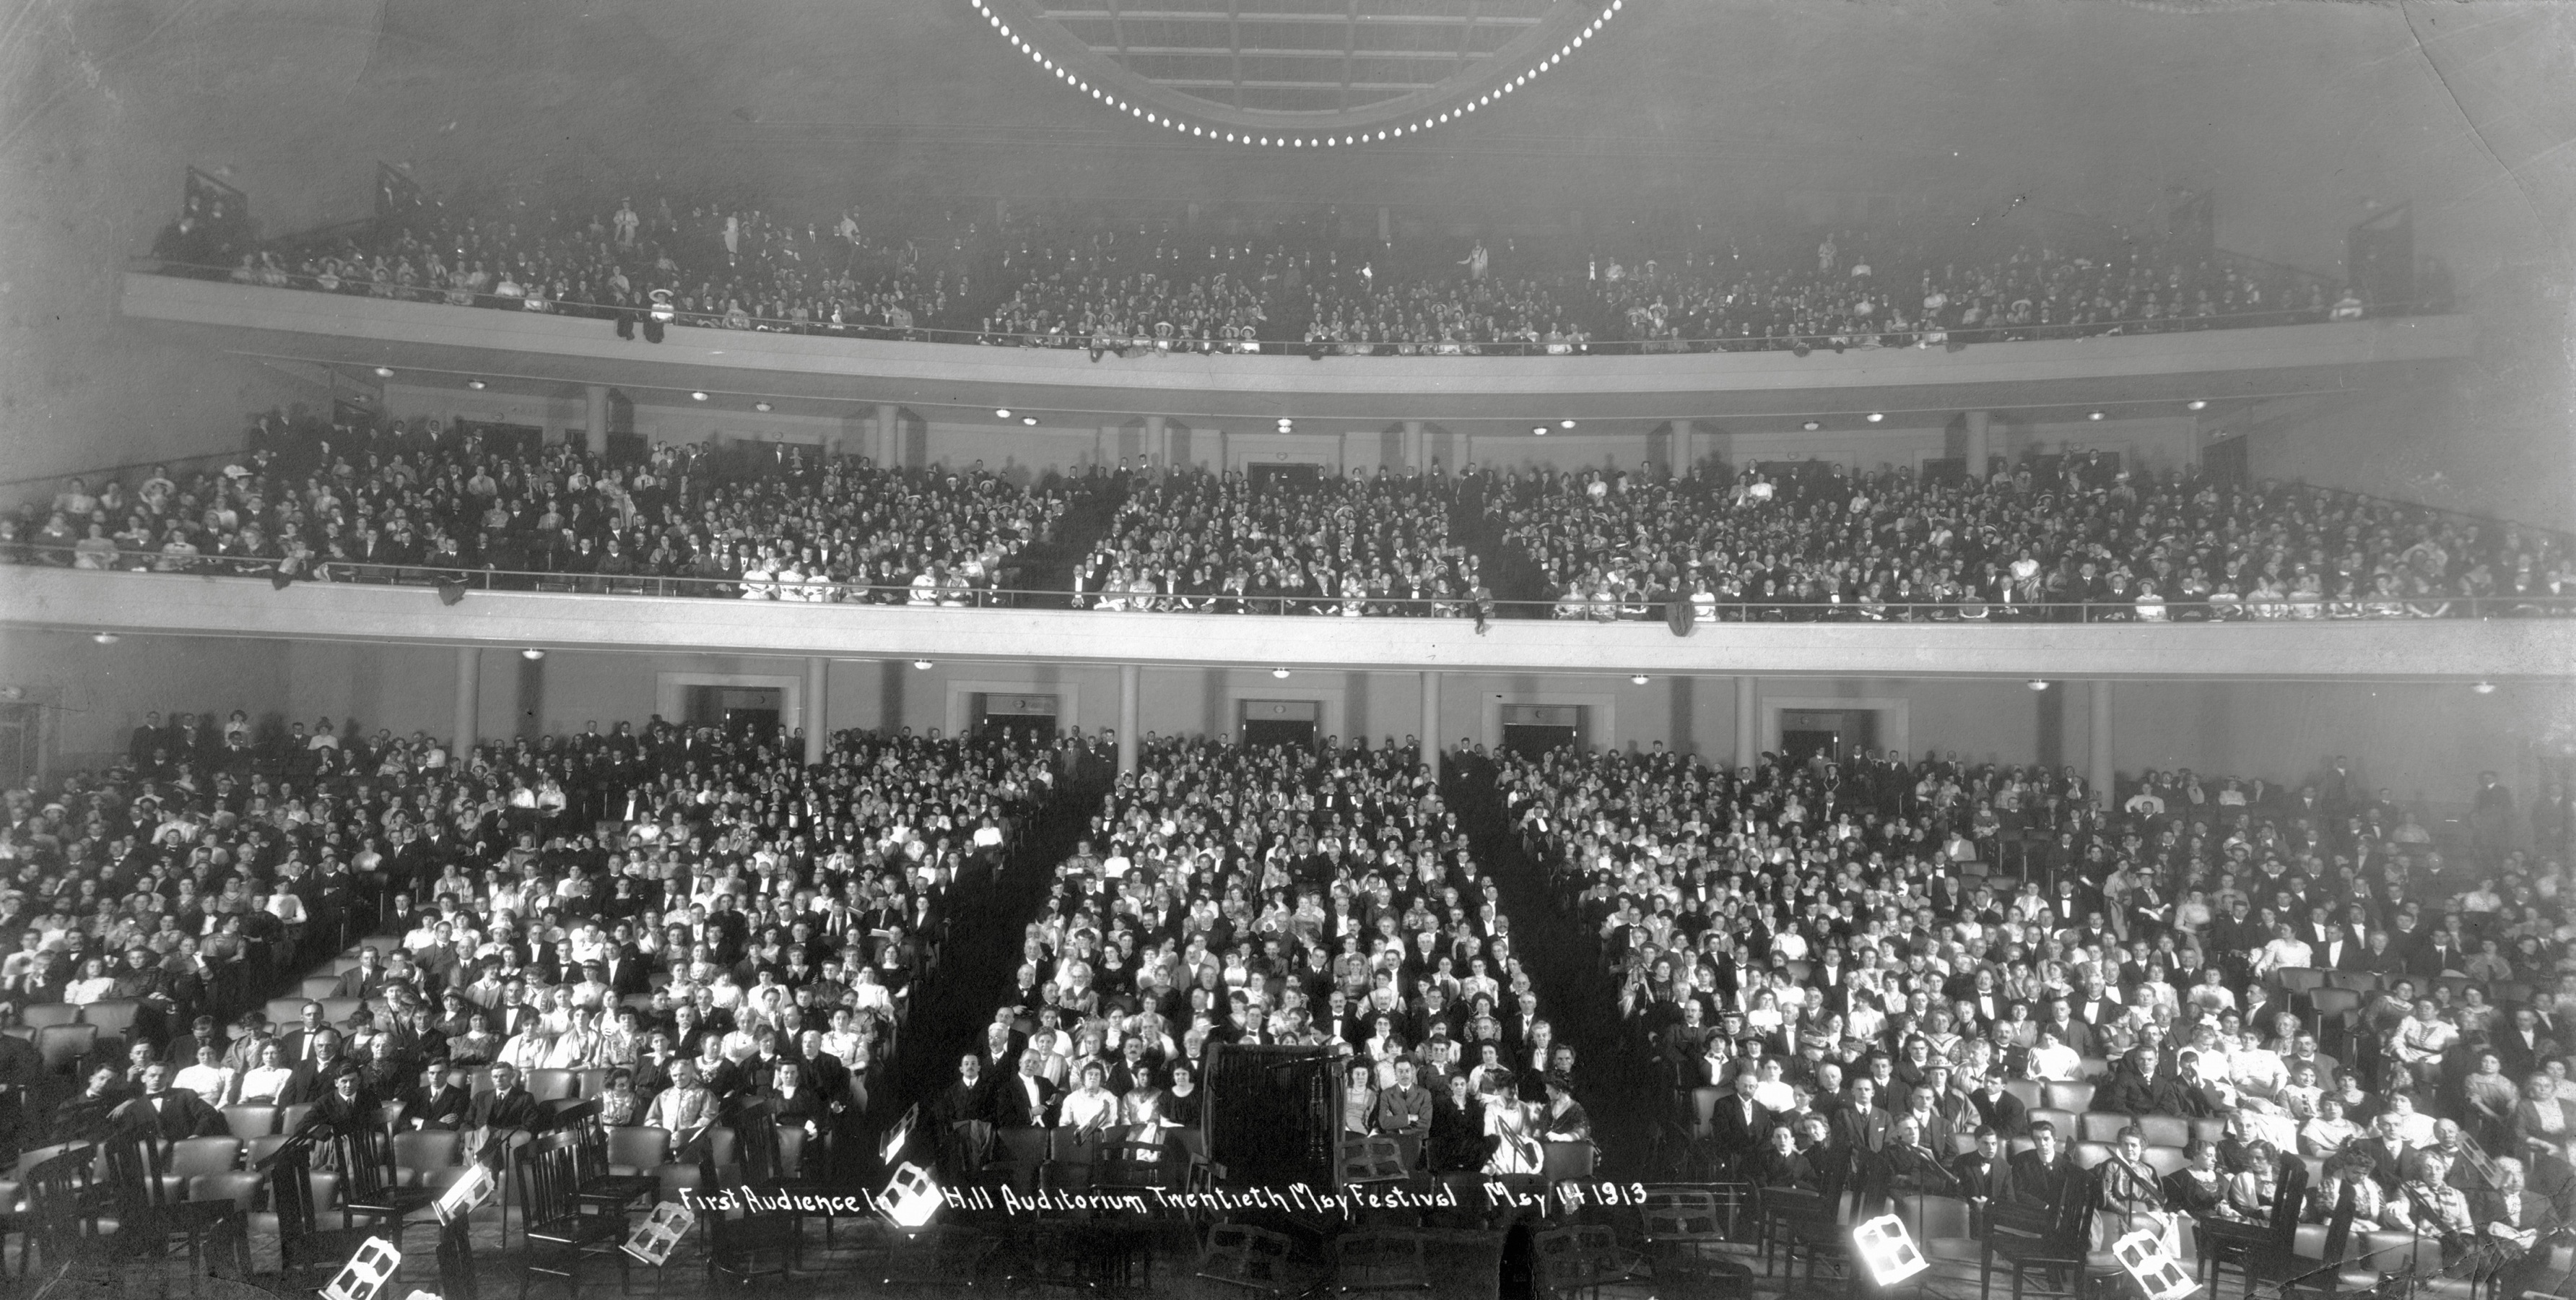 Hill Auditorium's first audience, May 14, 1913 image